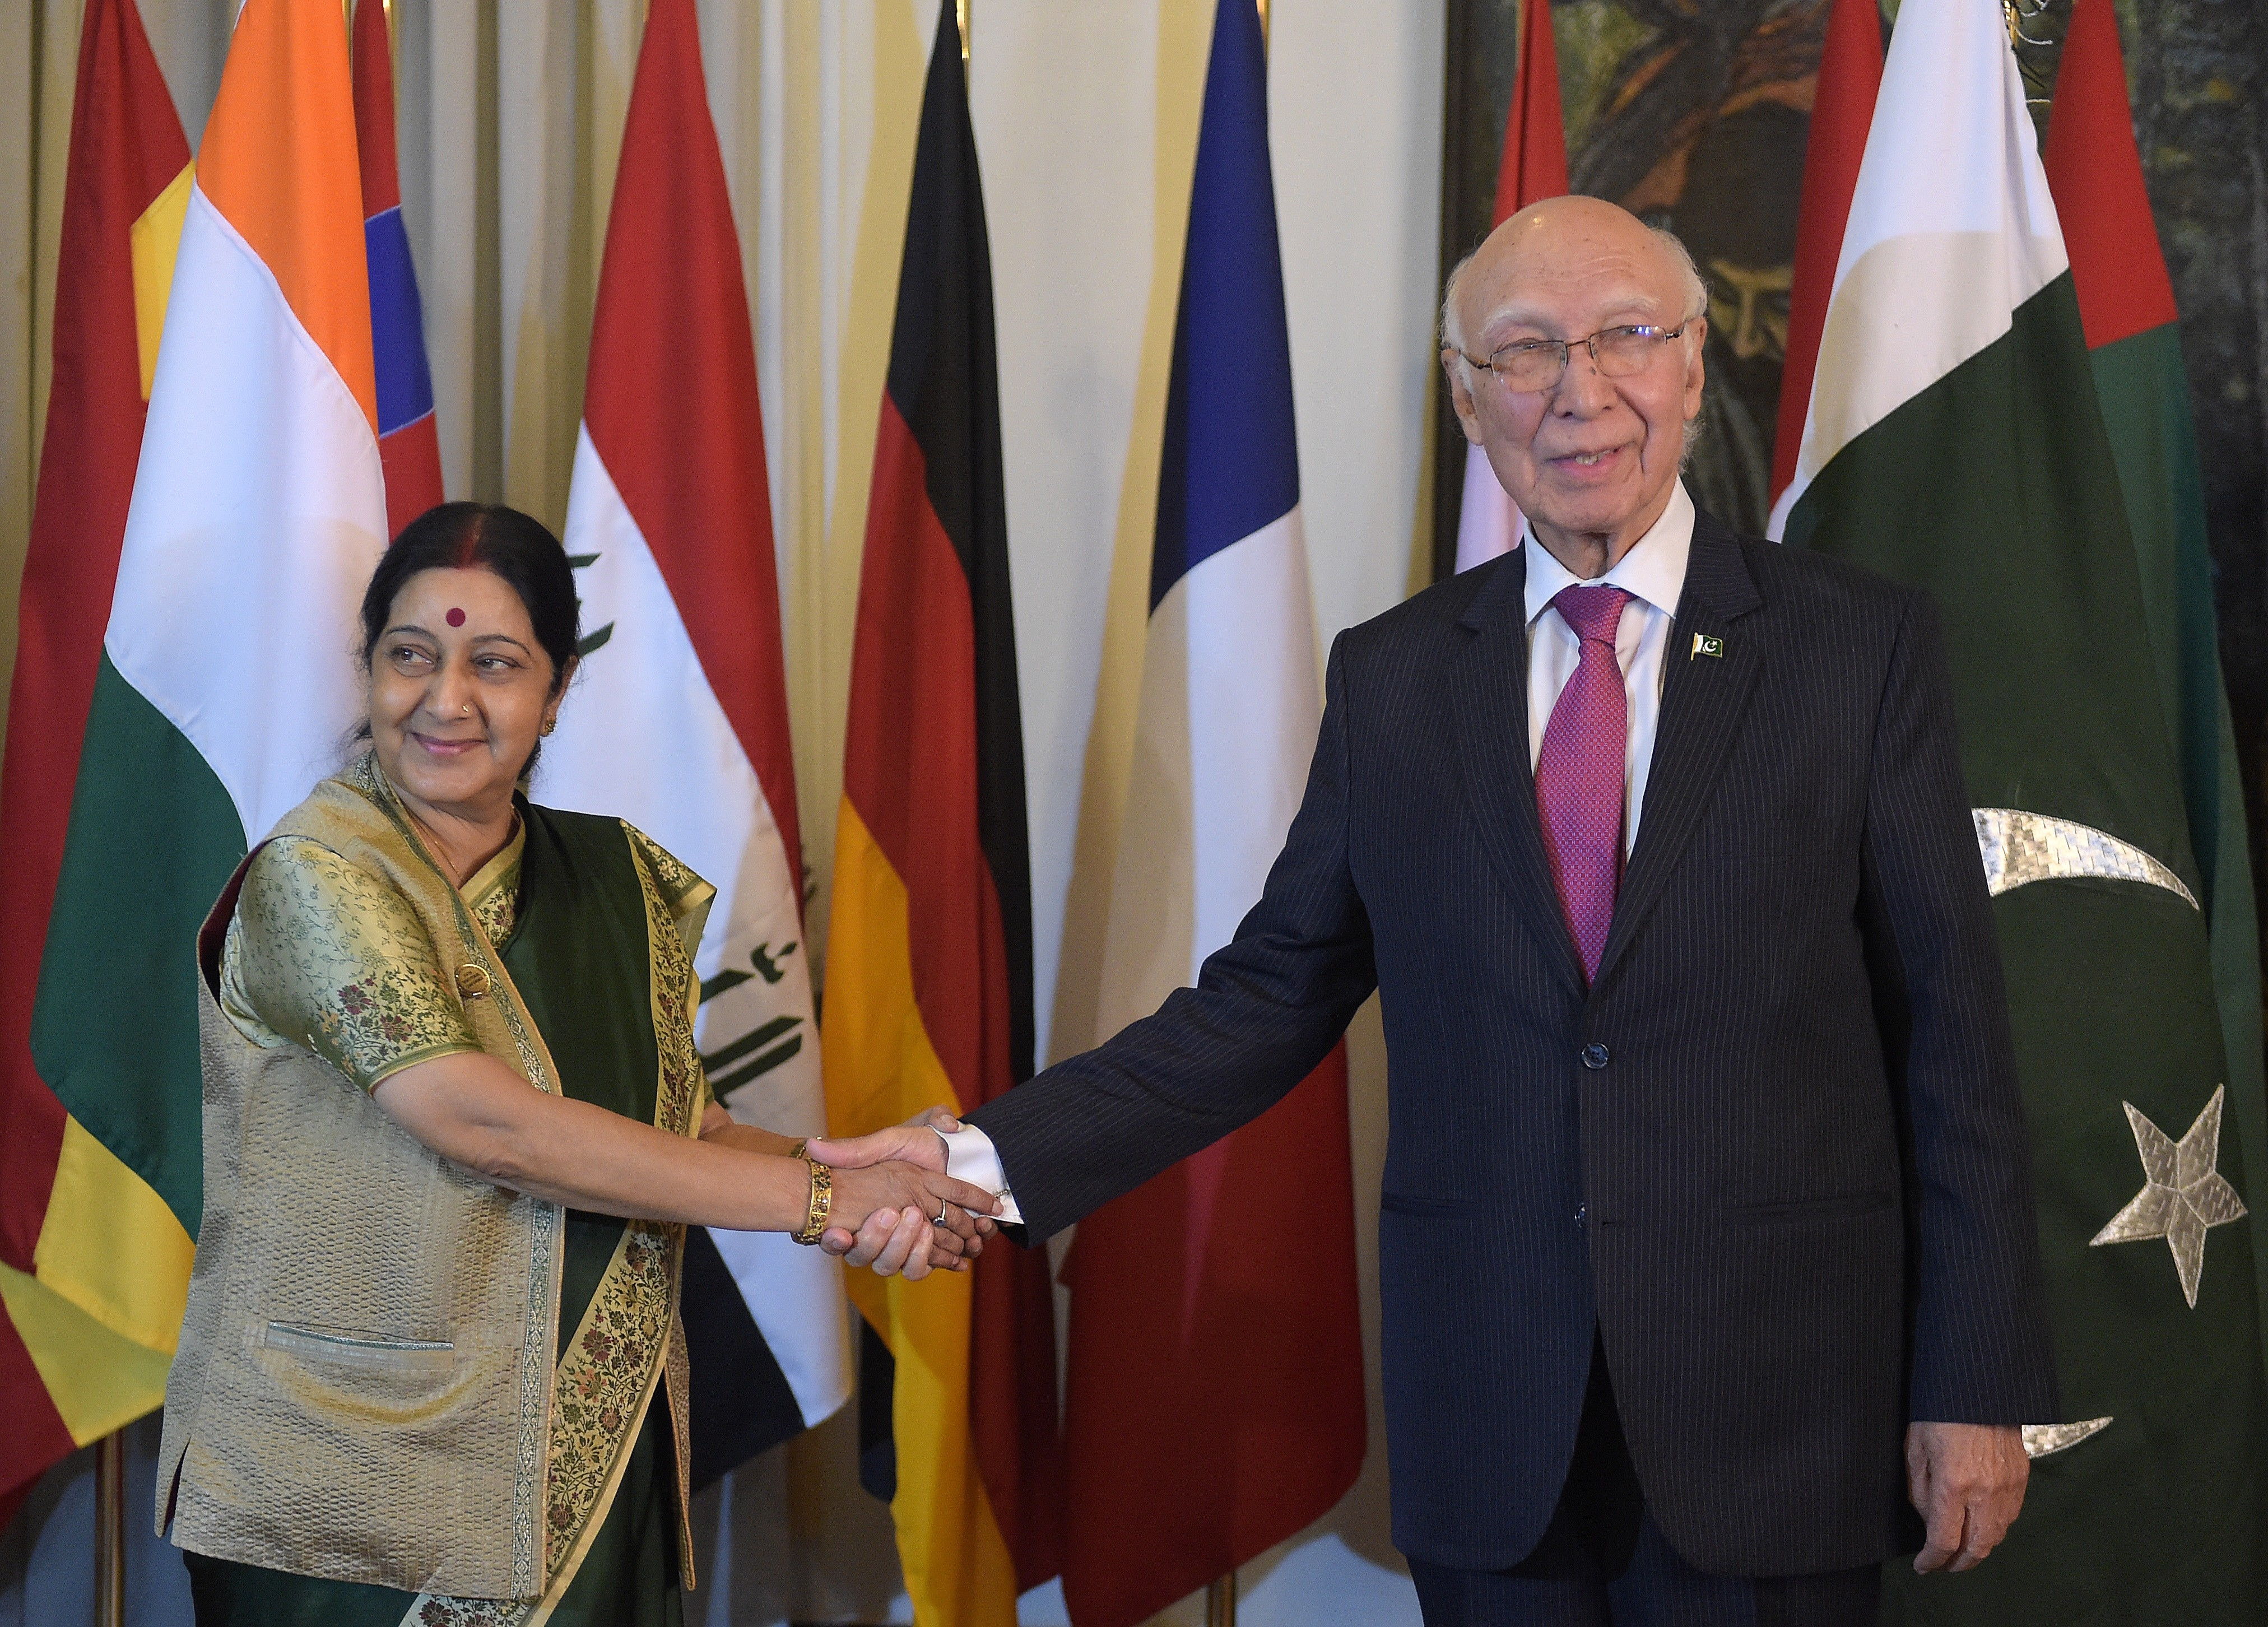 Pakistan's prime-ministerial adviser on foreign affairs Sartaj Aziz, right, shakes hands with Indian Foreign Minister Sushma Swaraj in Islamabad on Dec. 9, 2015